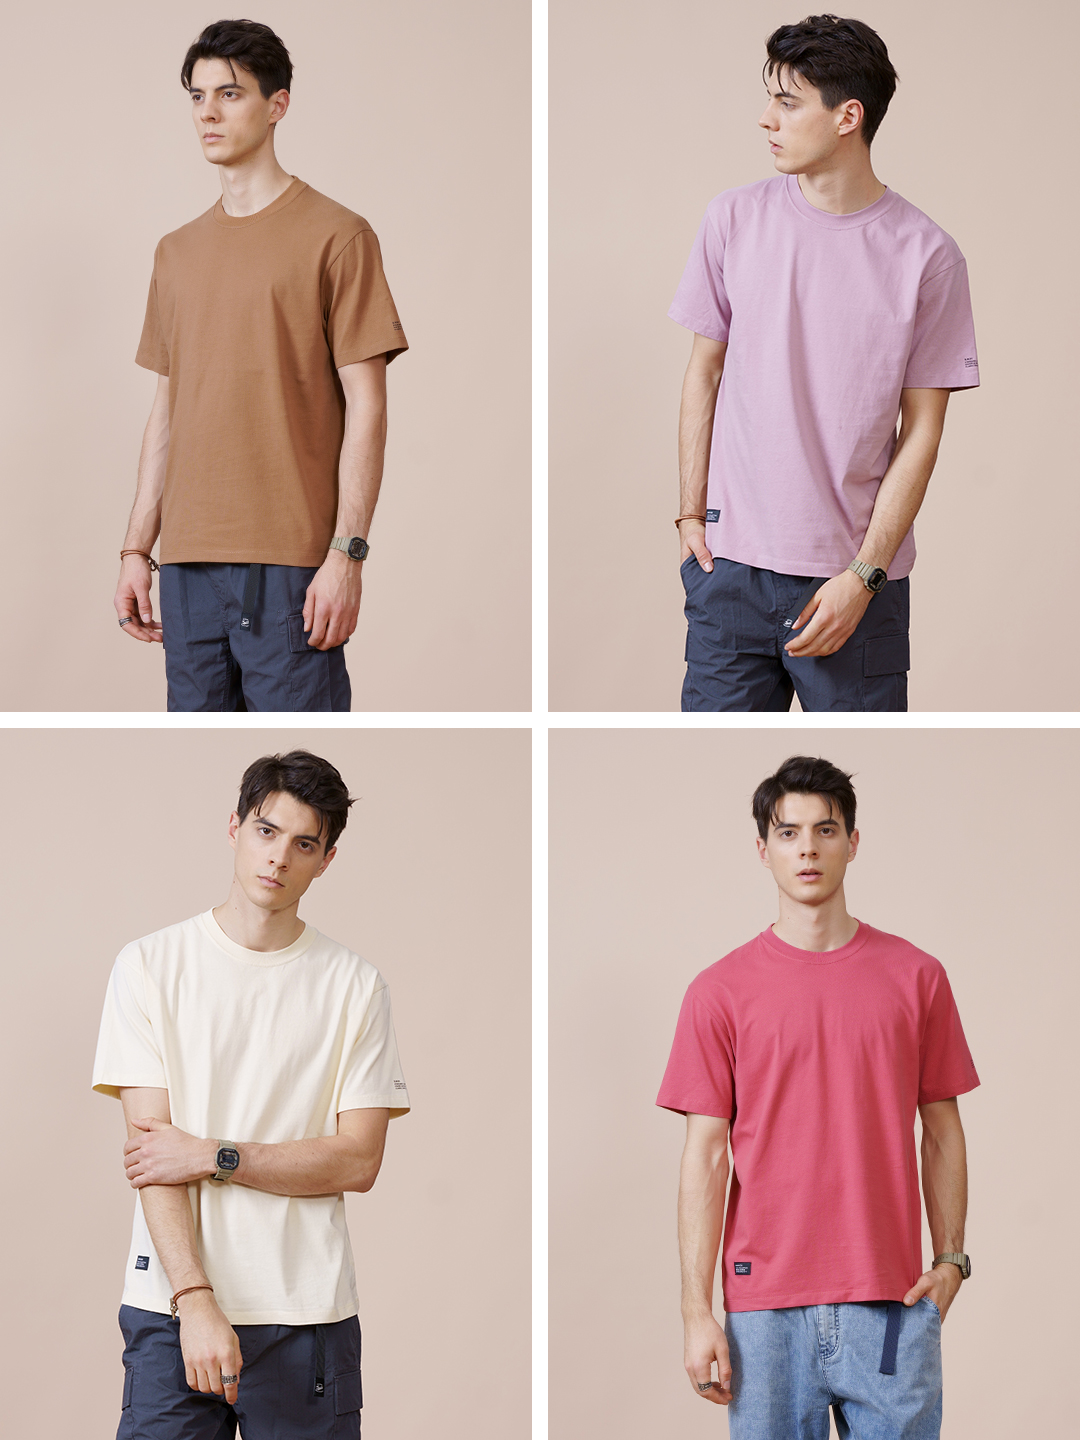 SIMWOOD 2021 Summer New 250g 100% Cotton Fabric T-shirt Men High Quality Solid Color Drop Sleeve Loose Tshirts Oversize Tops 4